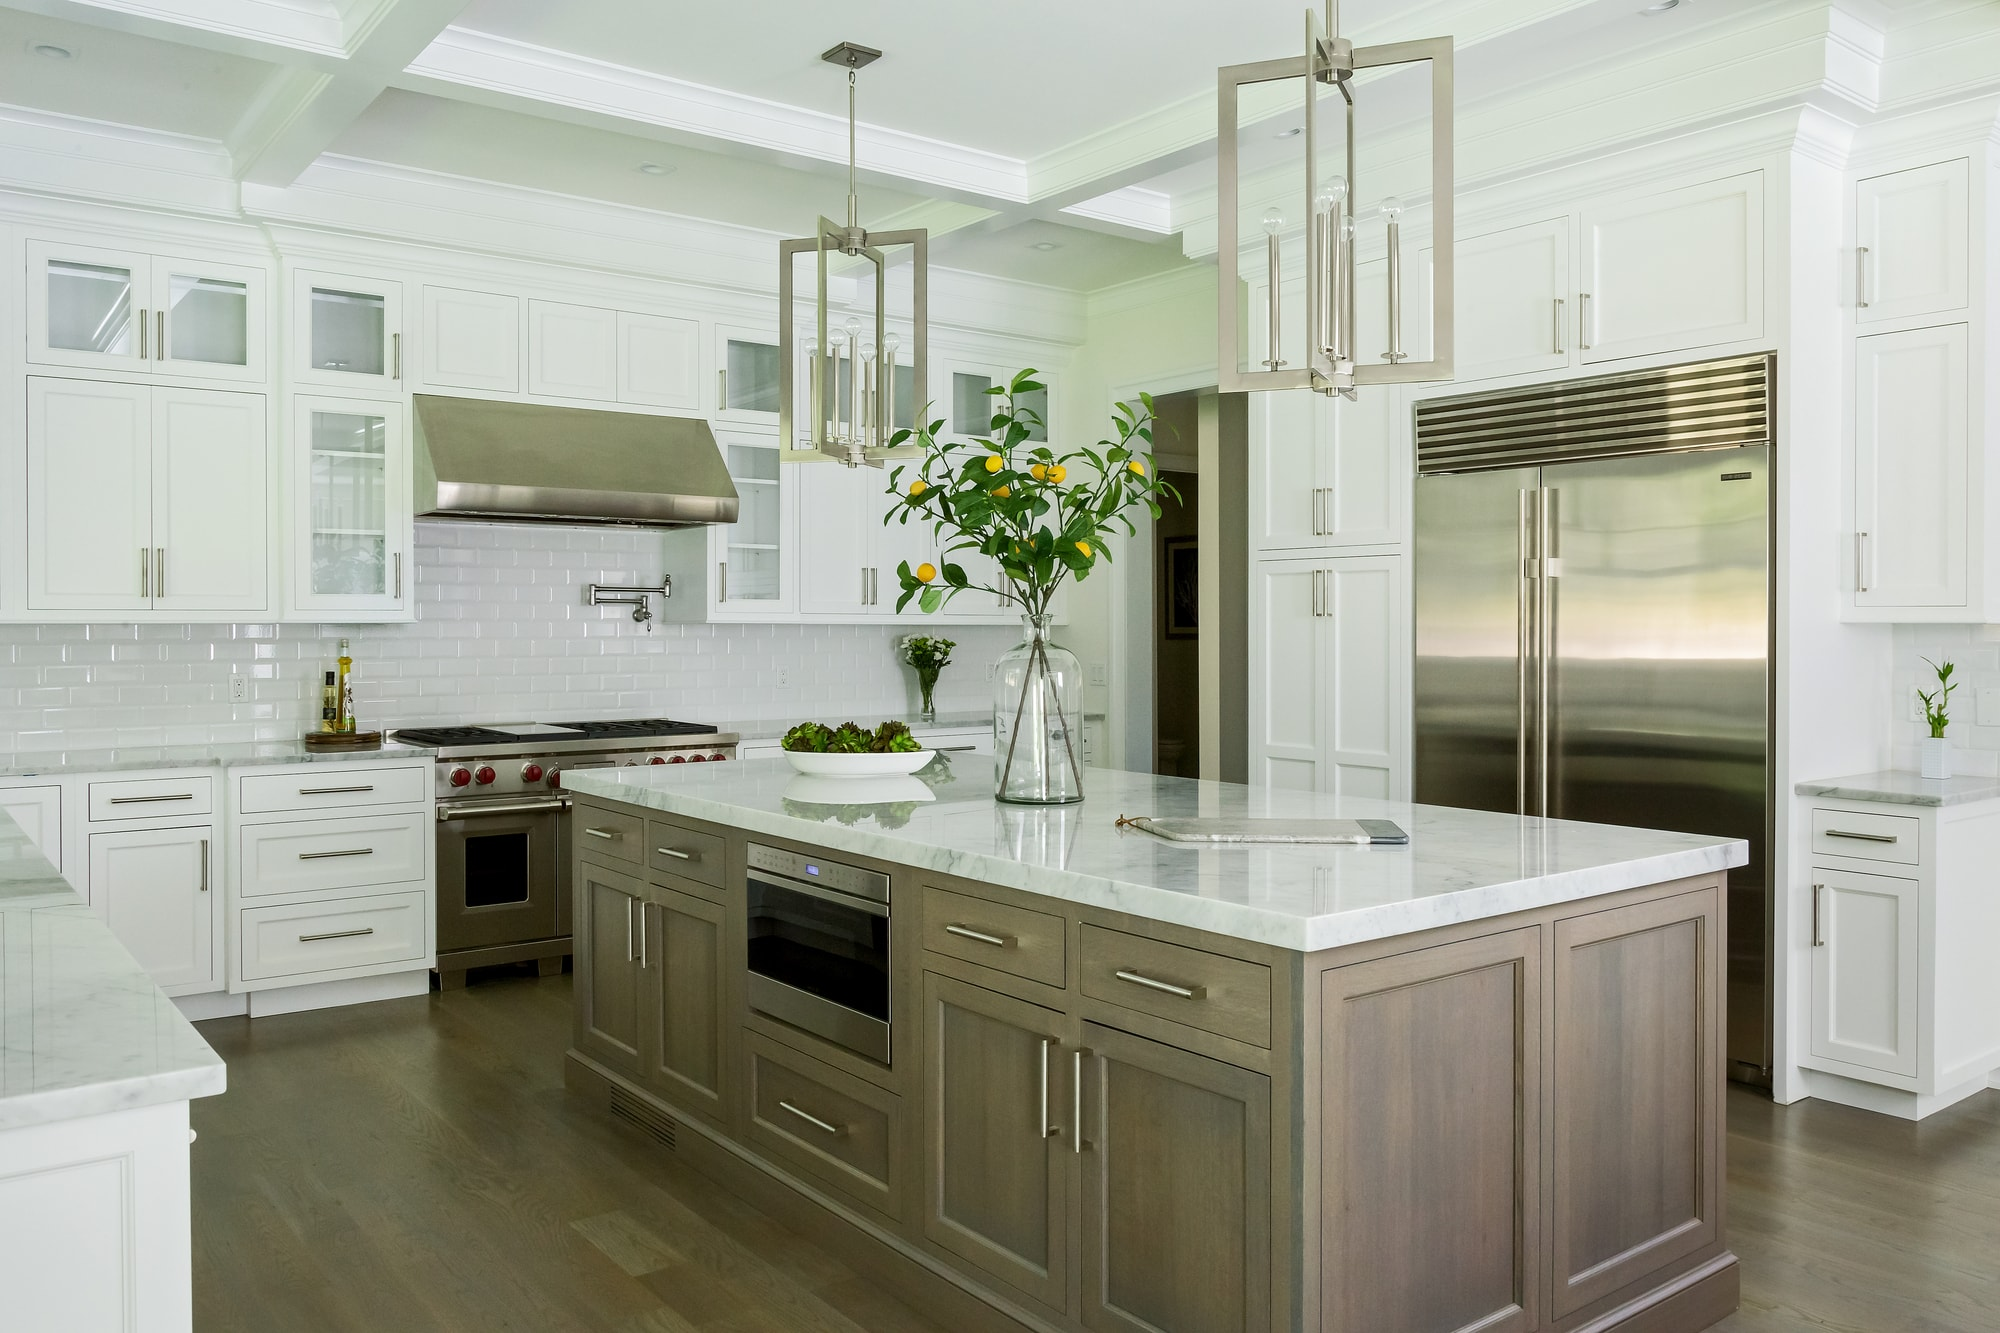 Copy of Transitional style kitchen with spacious wood floor